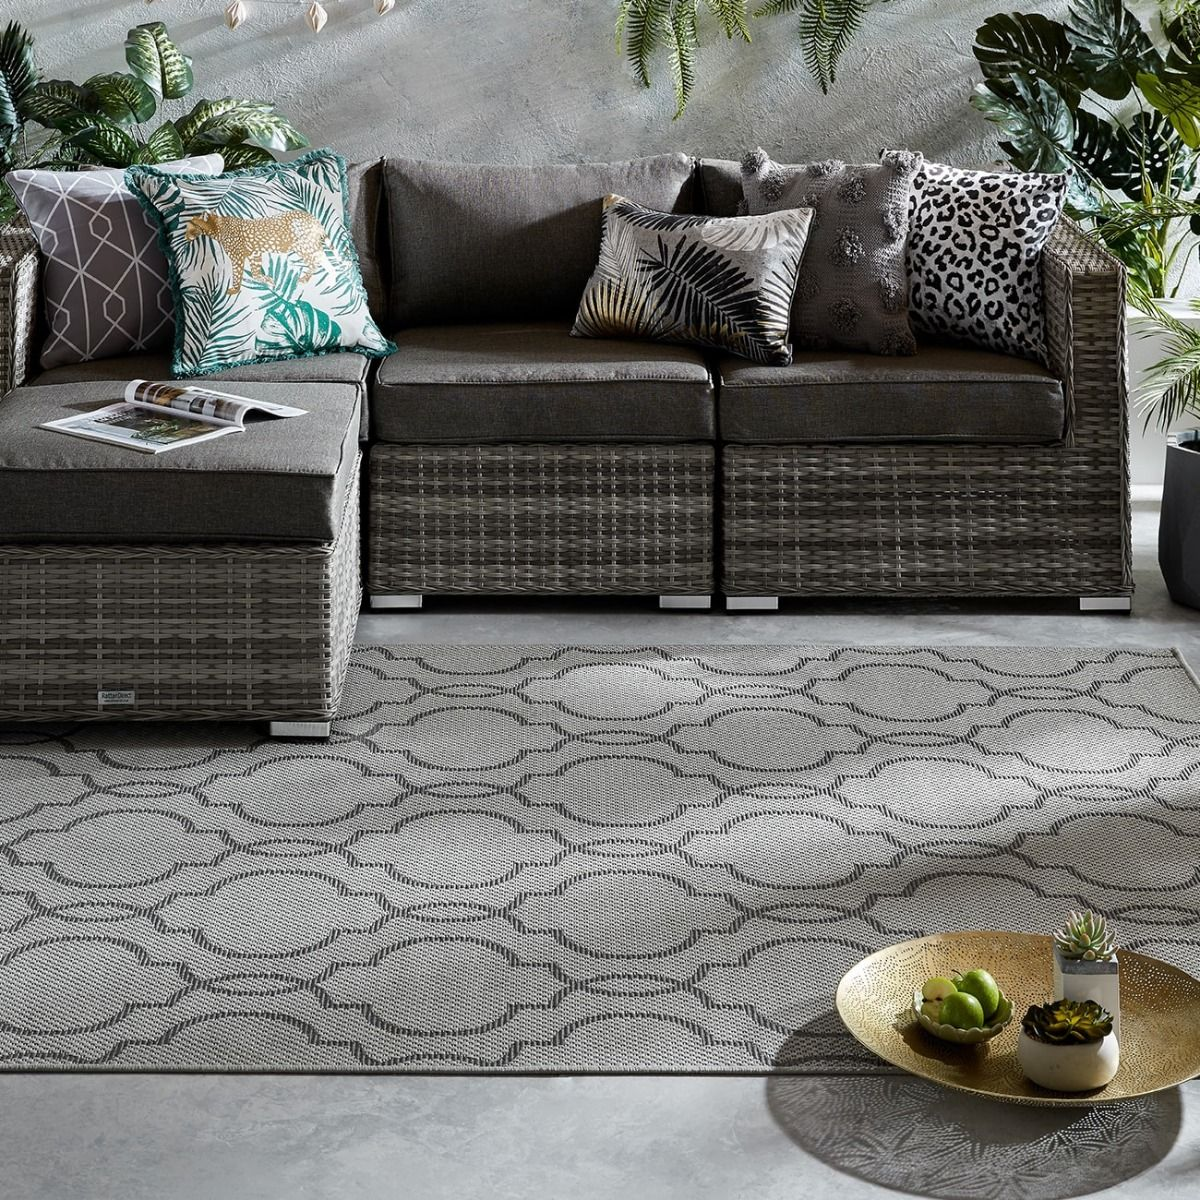 Buy Florence Alfresco Milan Grey Black Geometric Rug Therugshopuk